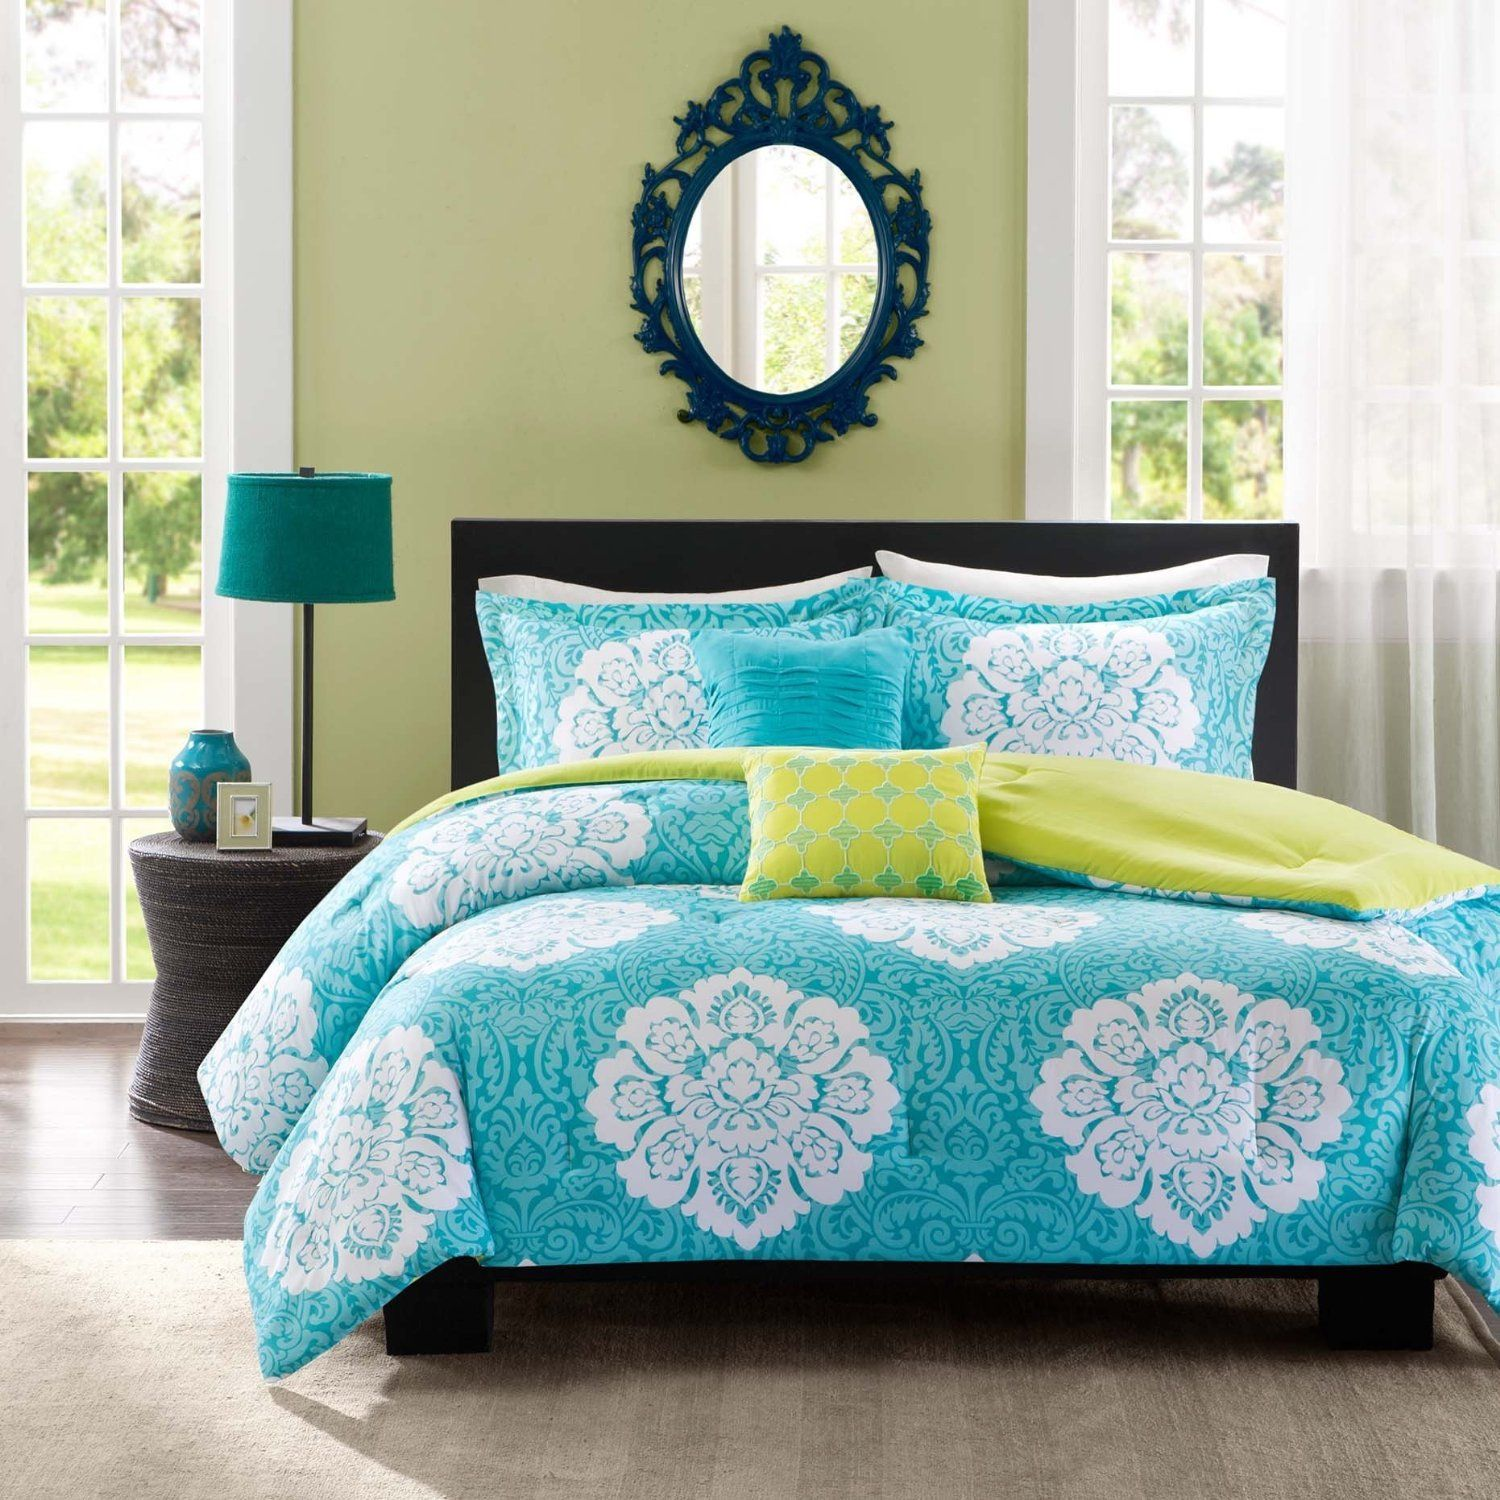 house teen sets set elegant room vogue to contemporary top bed ruffle household prepare green for ideas pinterest ella teenagers plan comforter girl bedding teal pertaining new residence